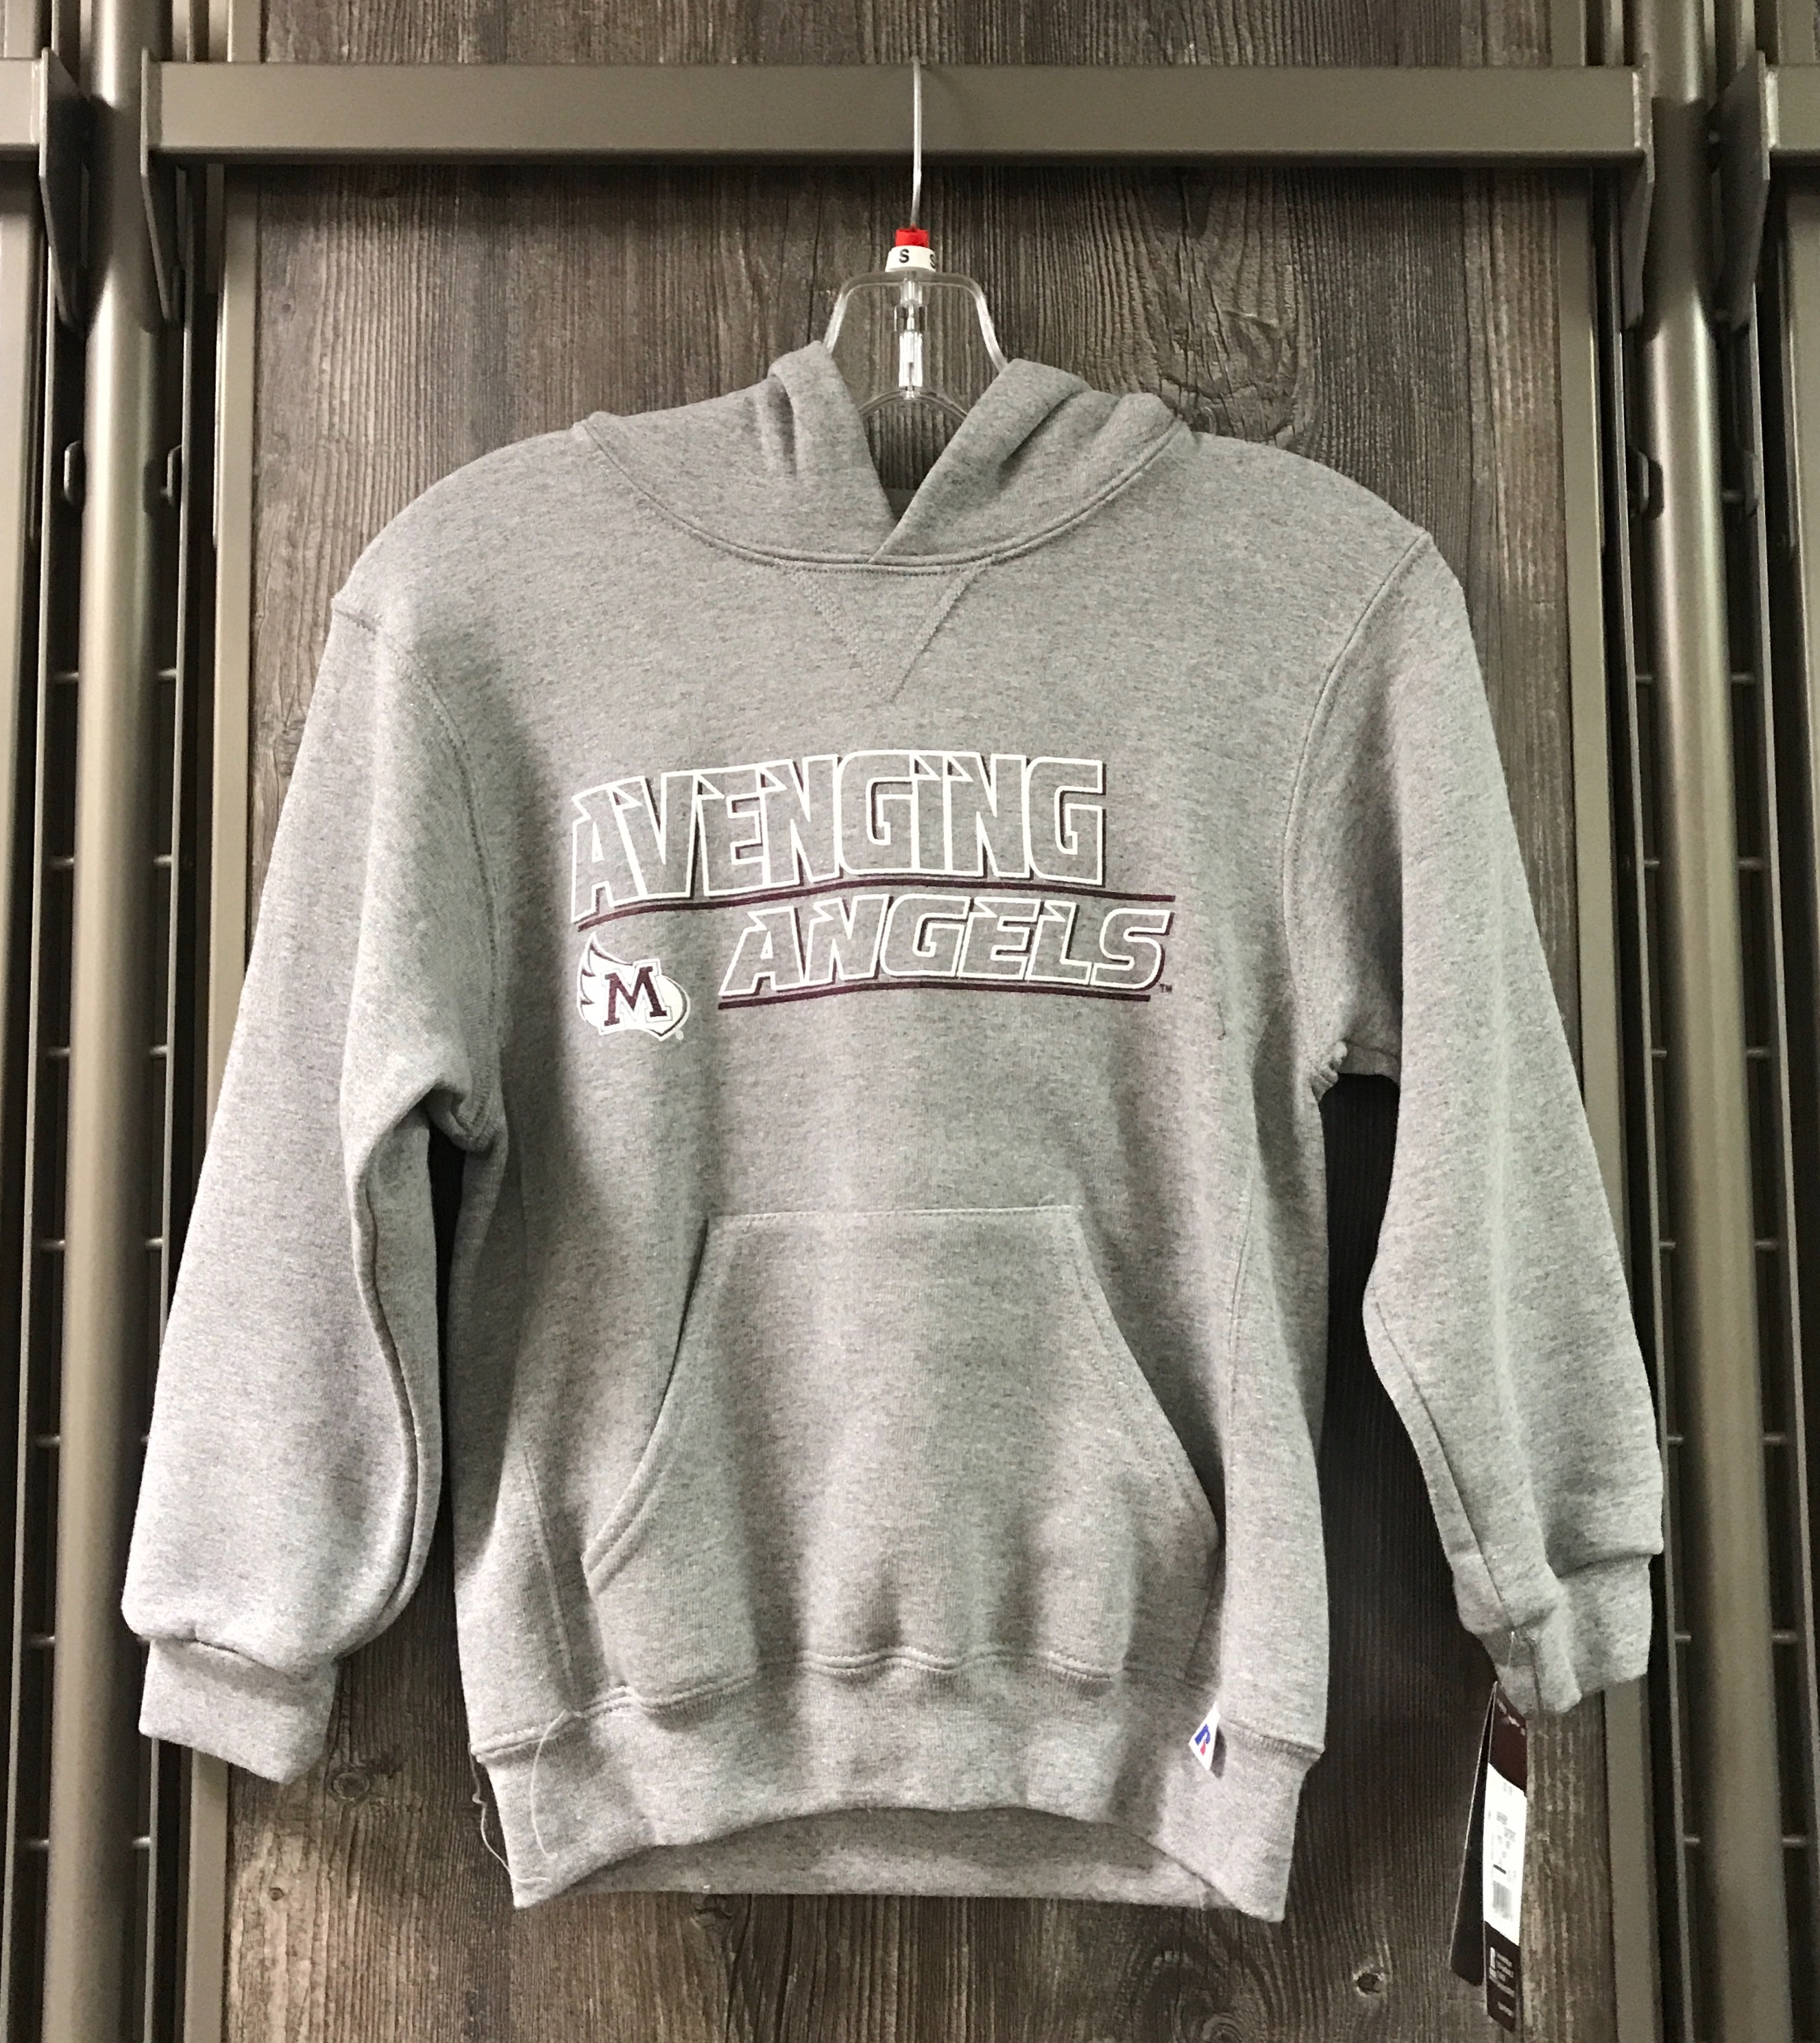 Image for the Hoodie Youth Oxford AA plus M-wing Russell product